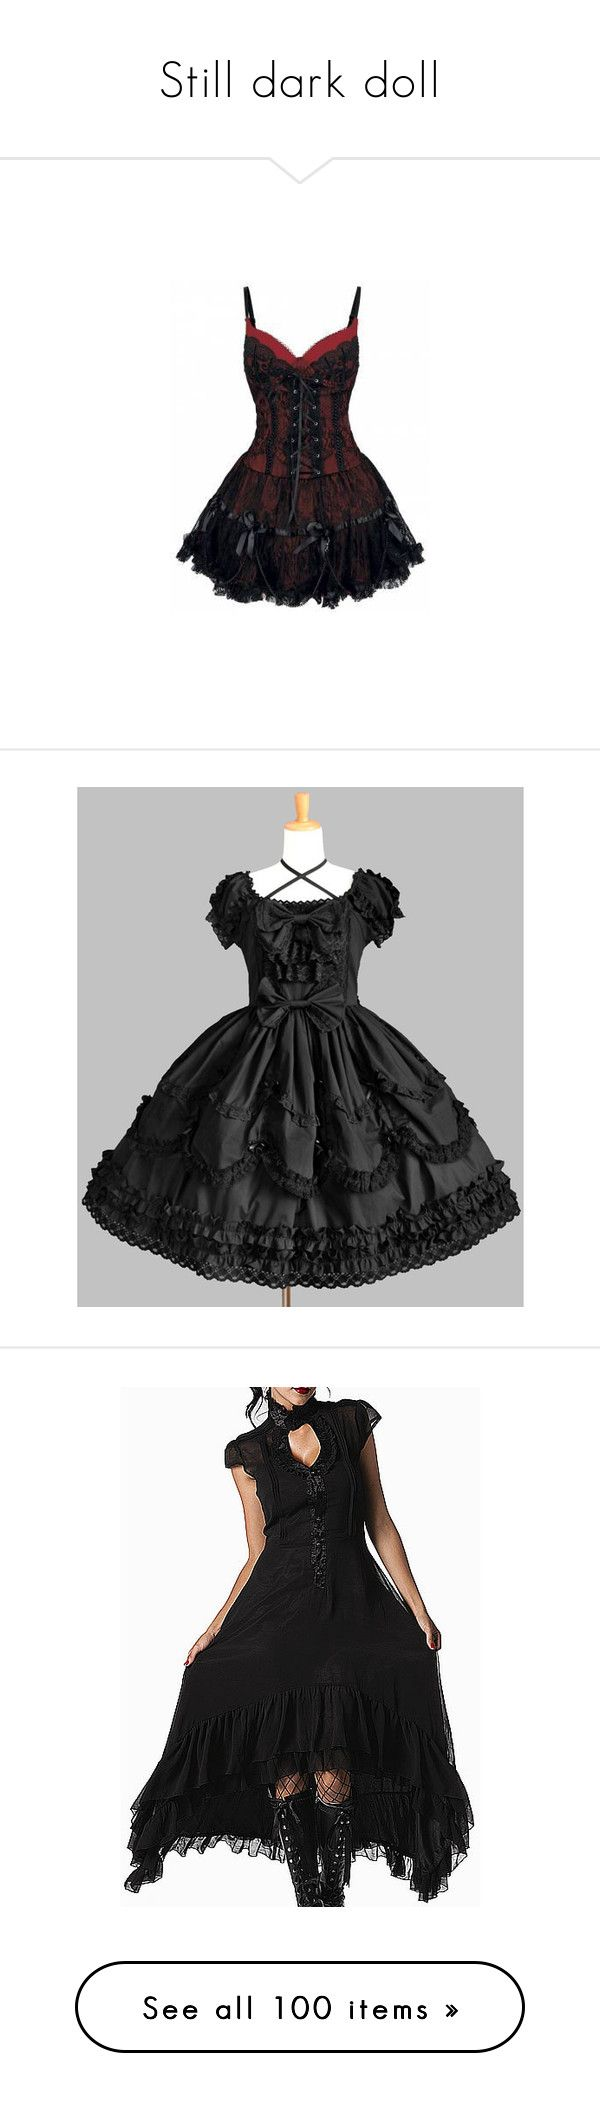 """Still dark doll"" by huntress-of-artemis ❤ liked on Polyvore featuring dresses, vestidos, short dresses, corsets, corset mini dress, gothic clothing dresses, goth corset, metal corset, lolita and gothic"